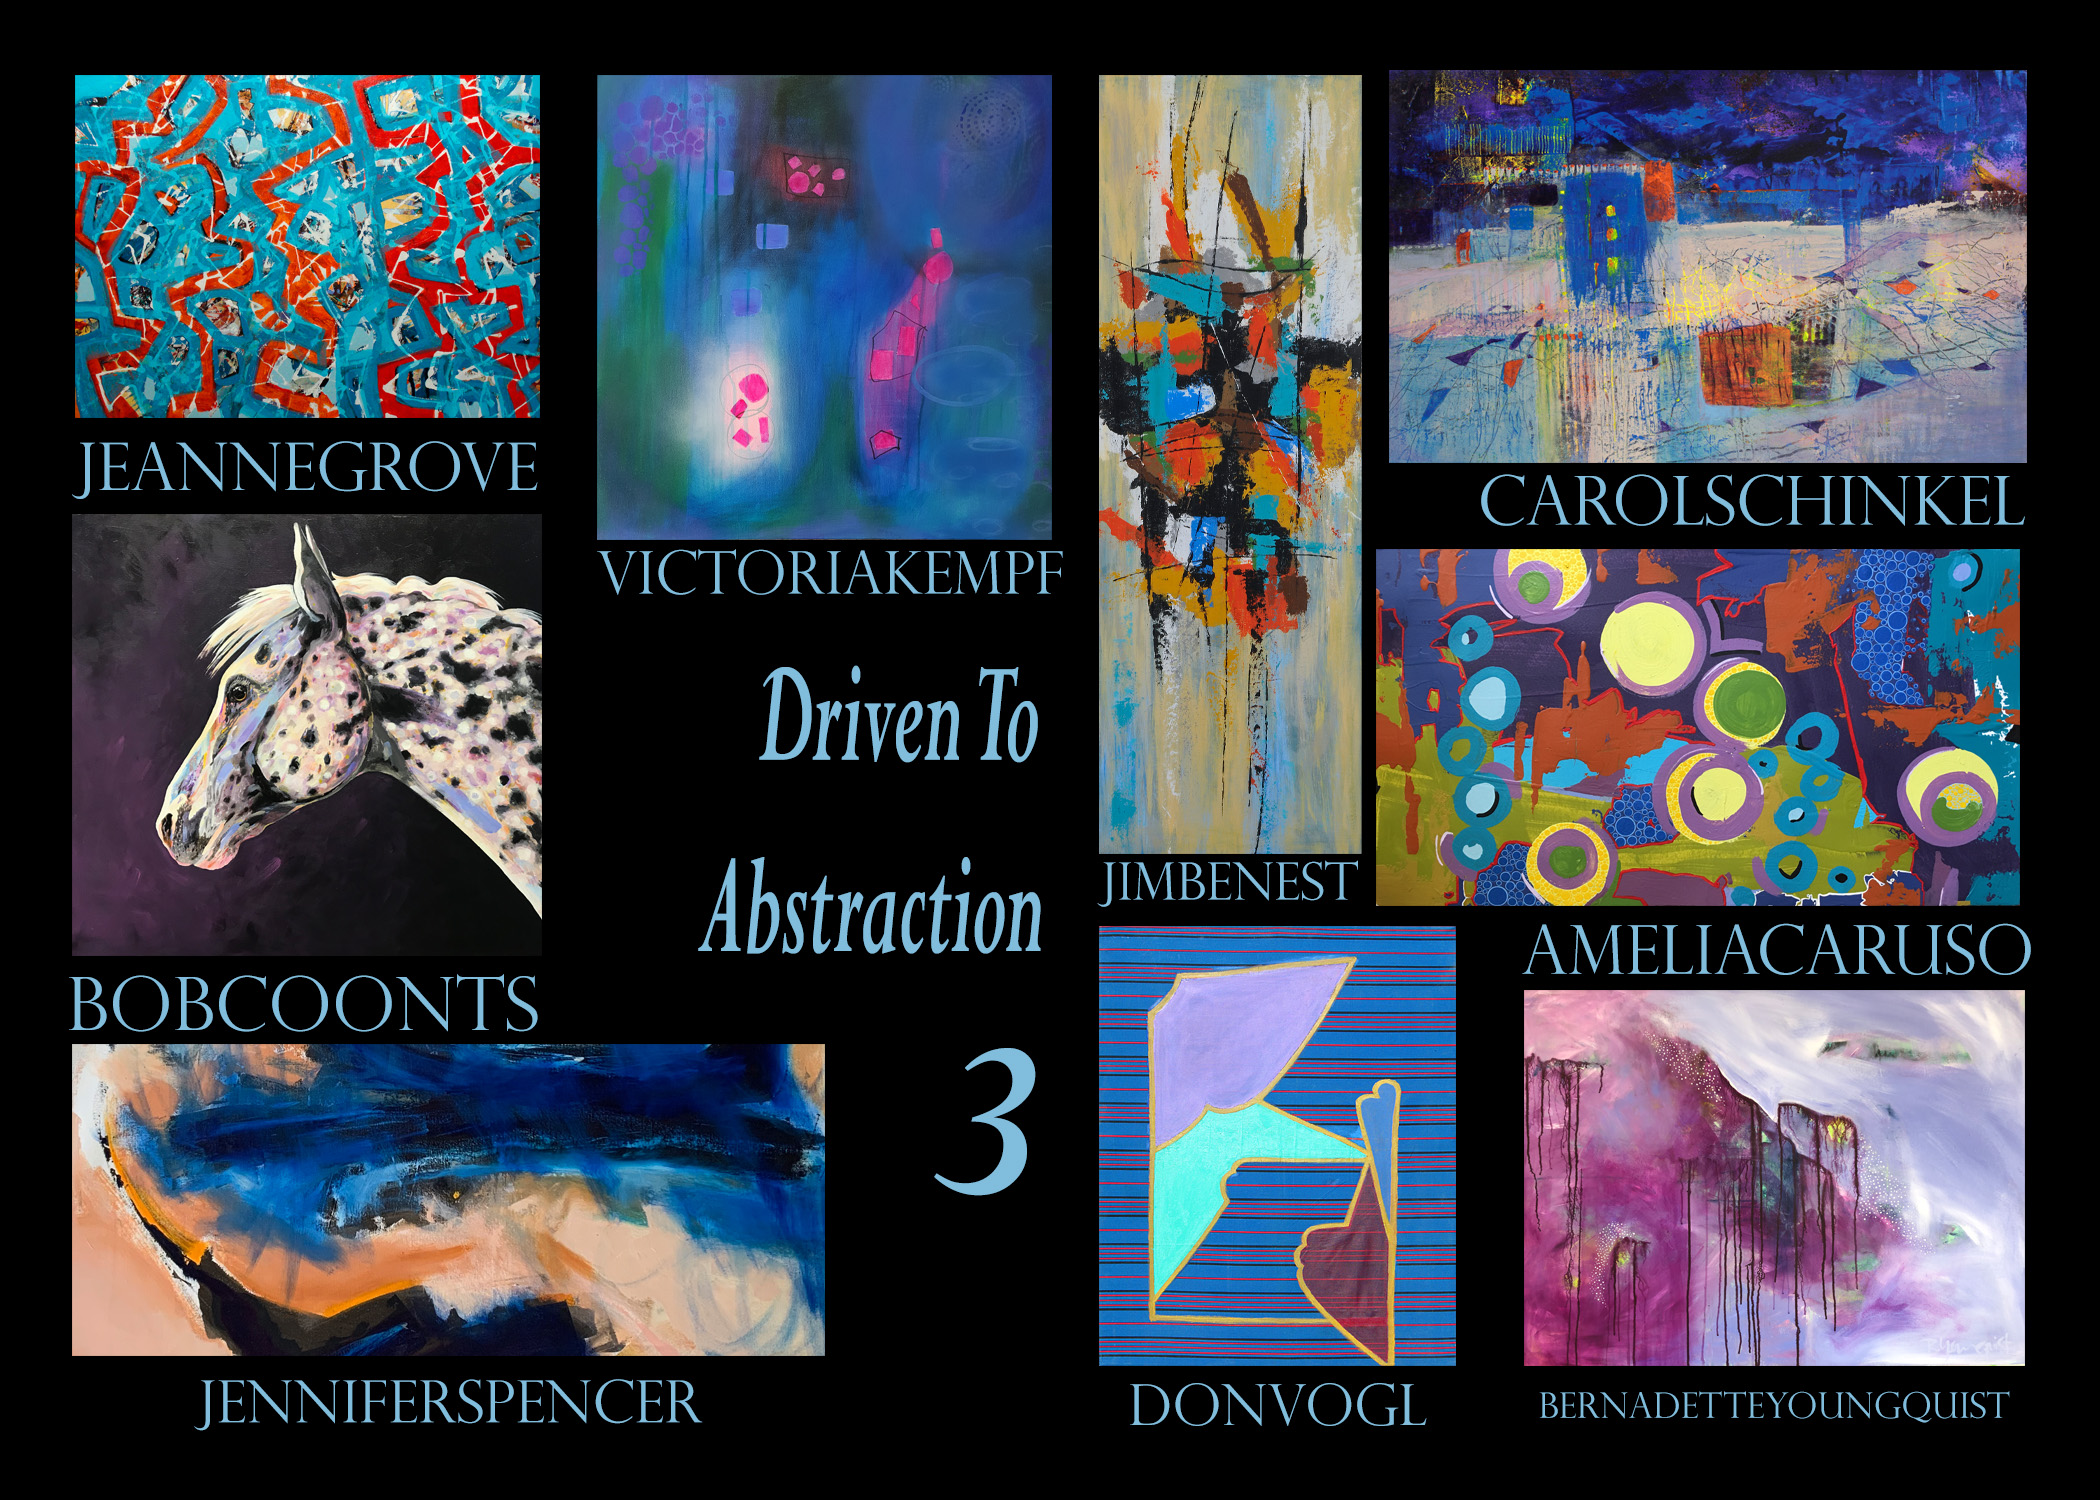 driven to abstraction 3